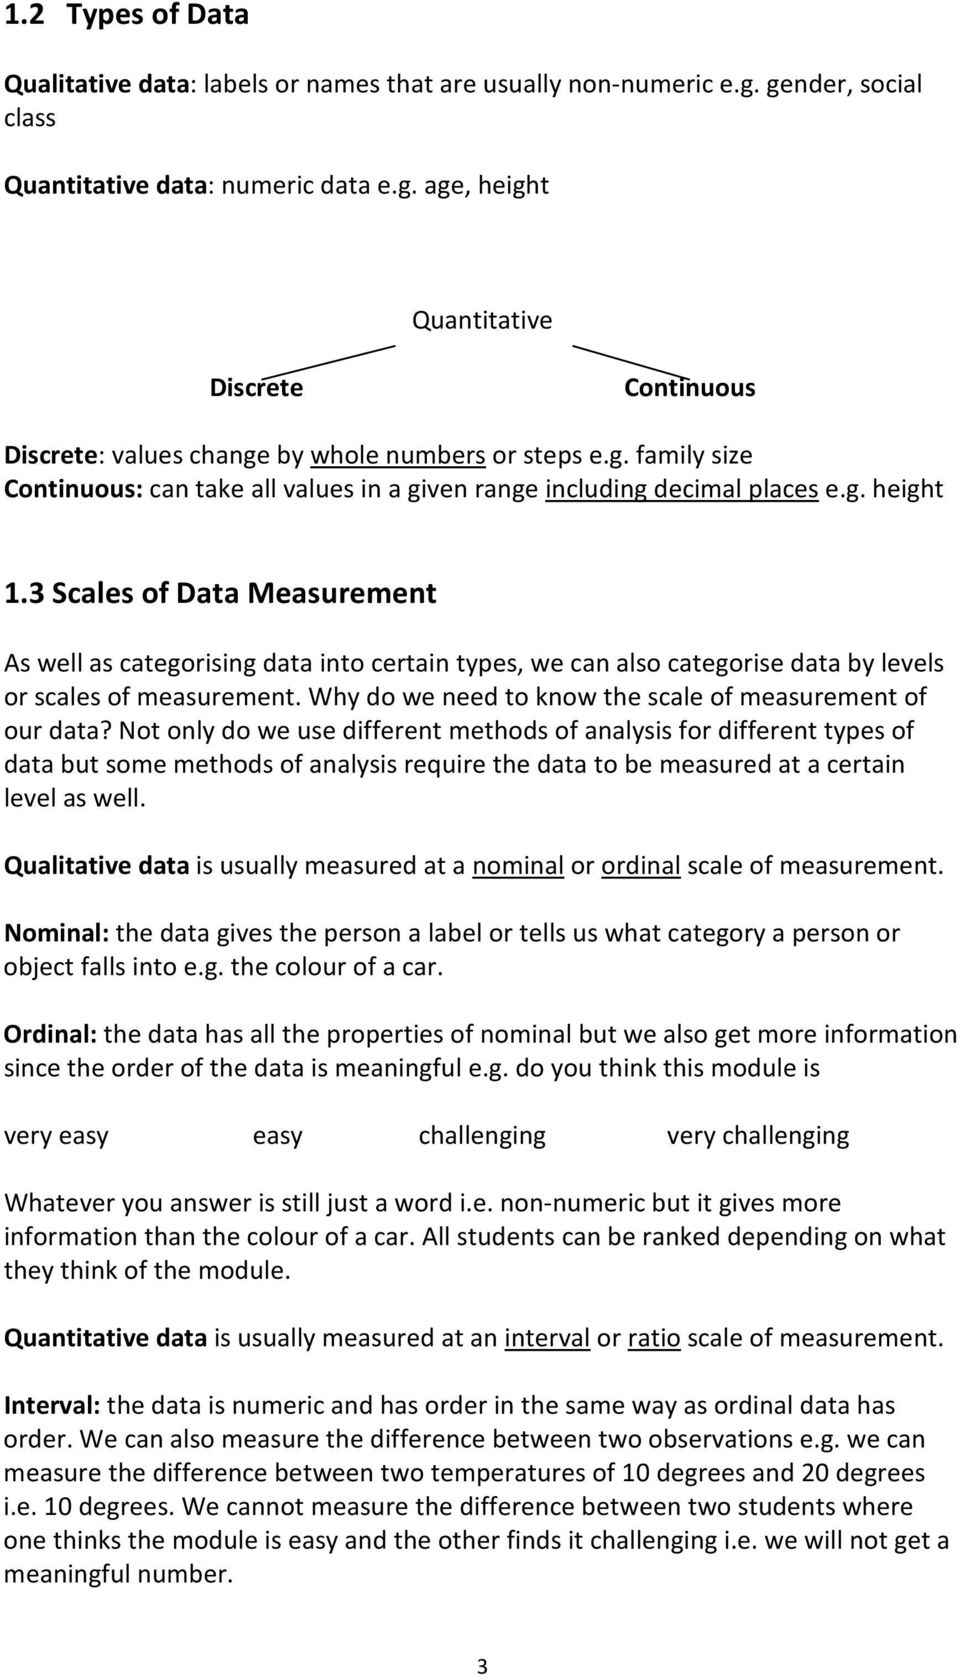 3 Scales of Data Measurement As well as categorising data into certain types, we can also categorise data by levels or scales of measurement.